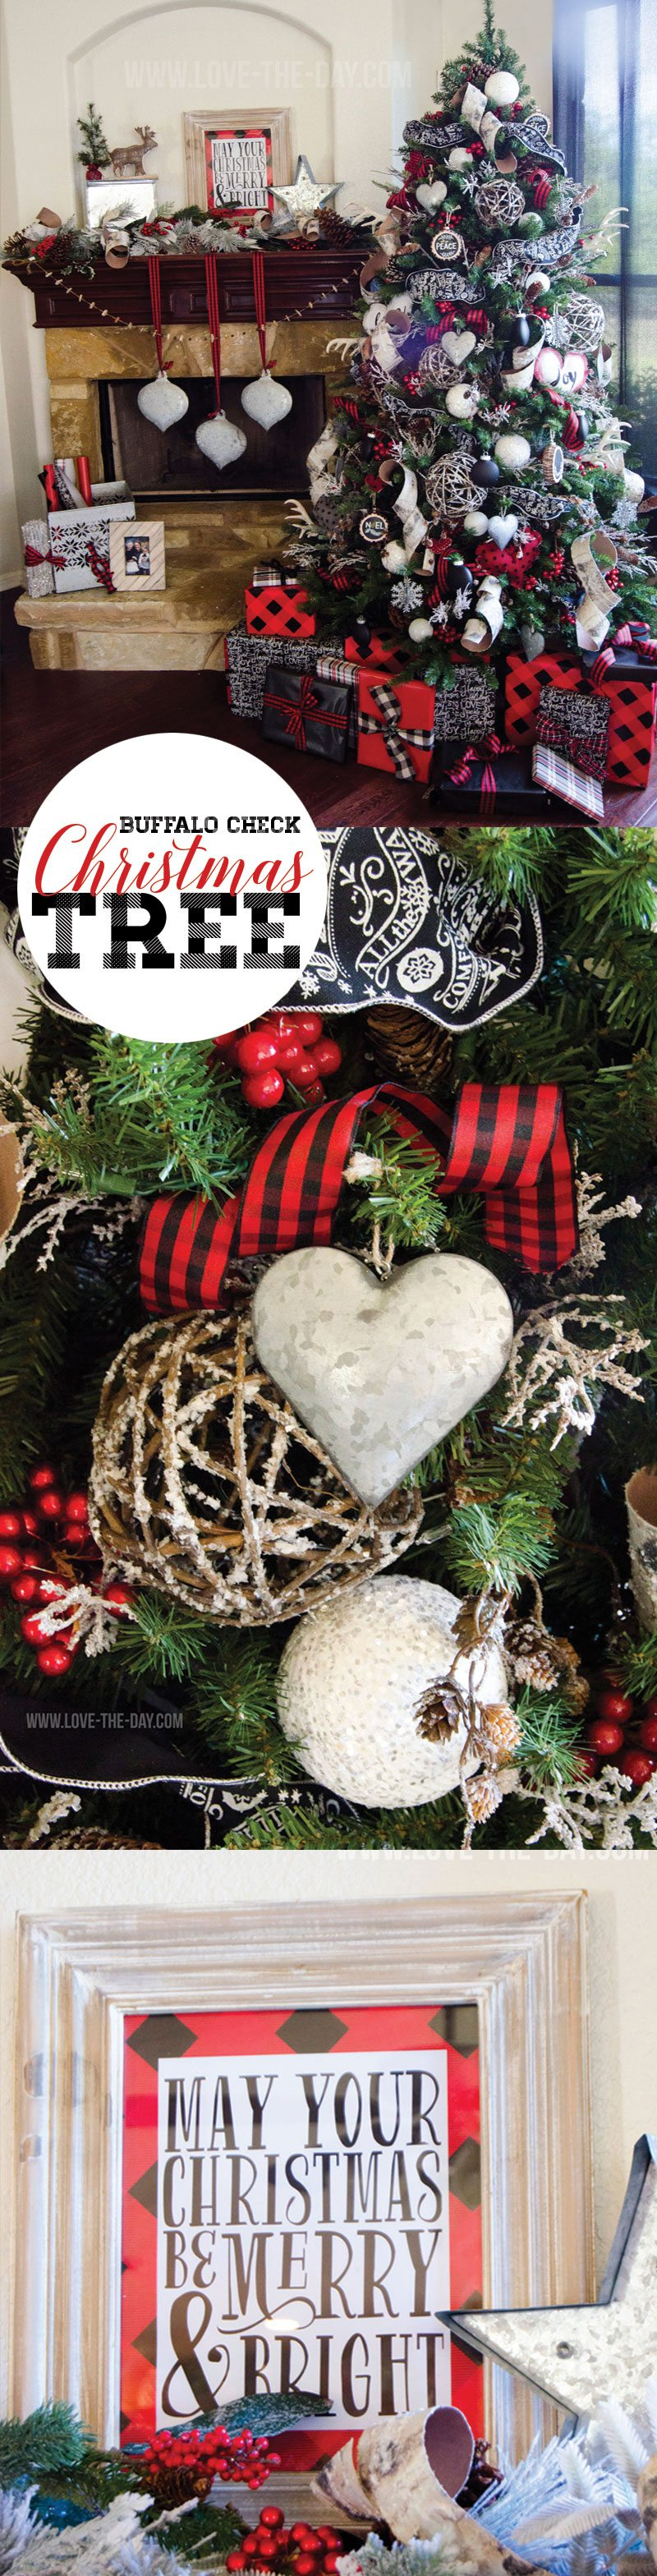 Buffalo Check Christmas Tree Idea by Lindi Haws of Love The Day